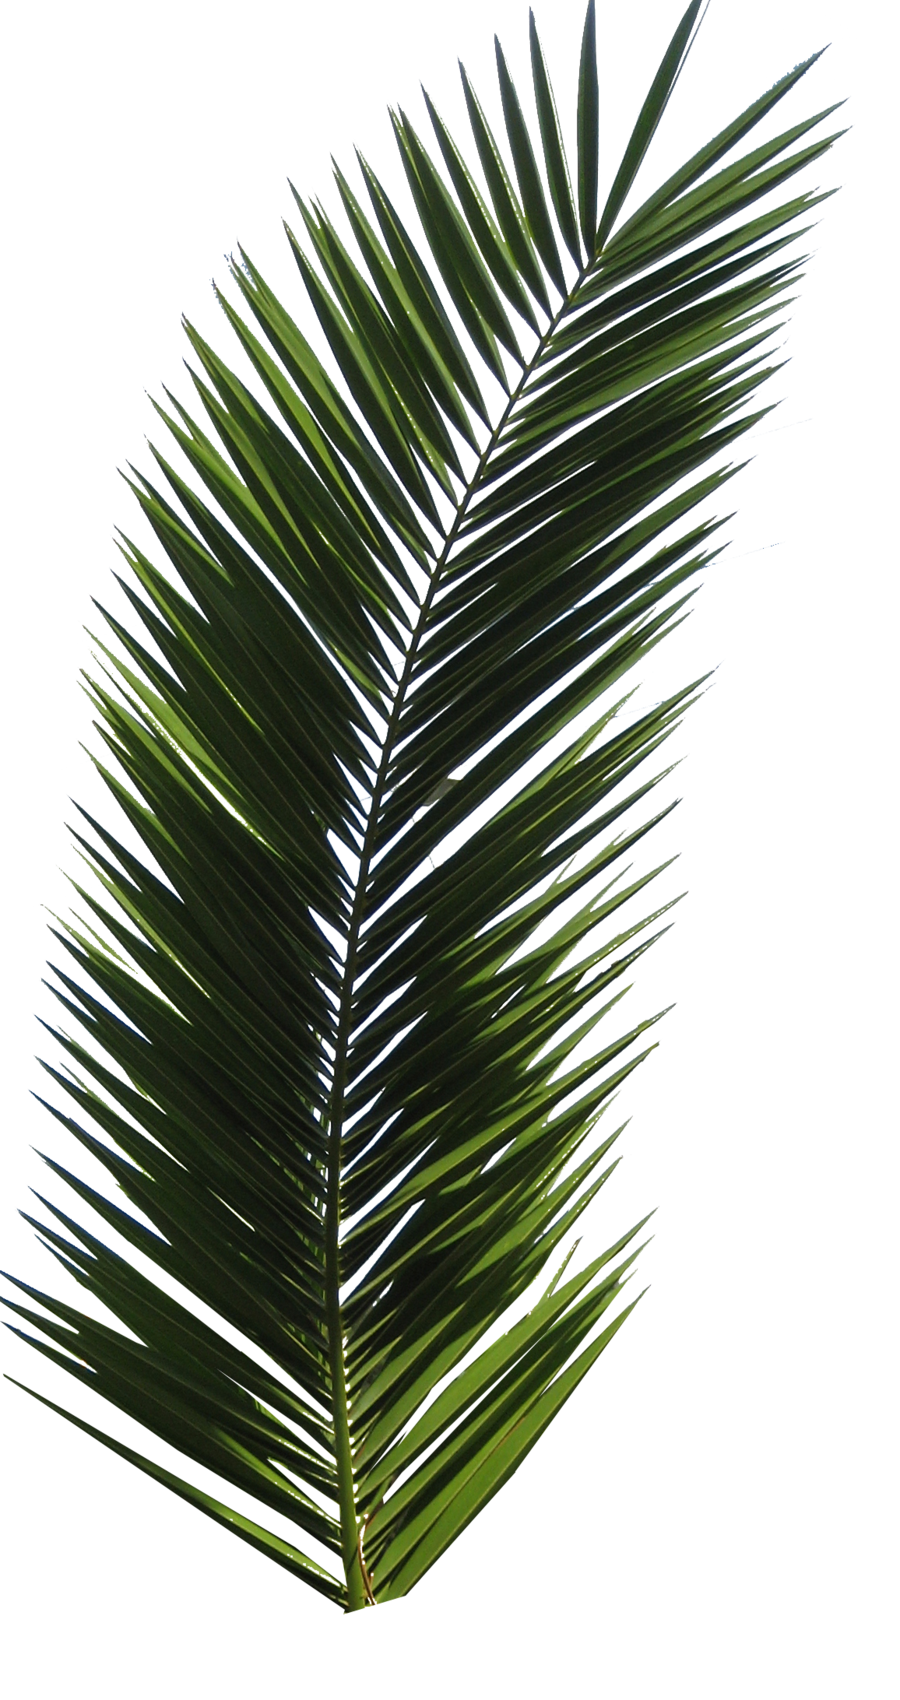 Green Palm Tree Branch 160.44 Kb